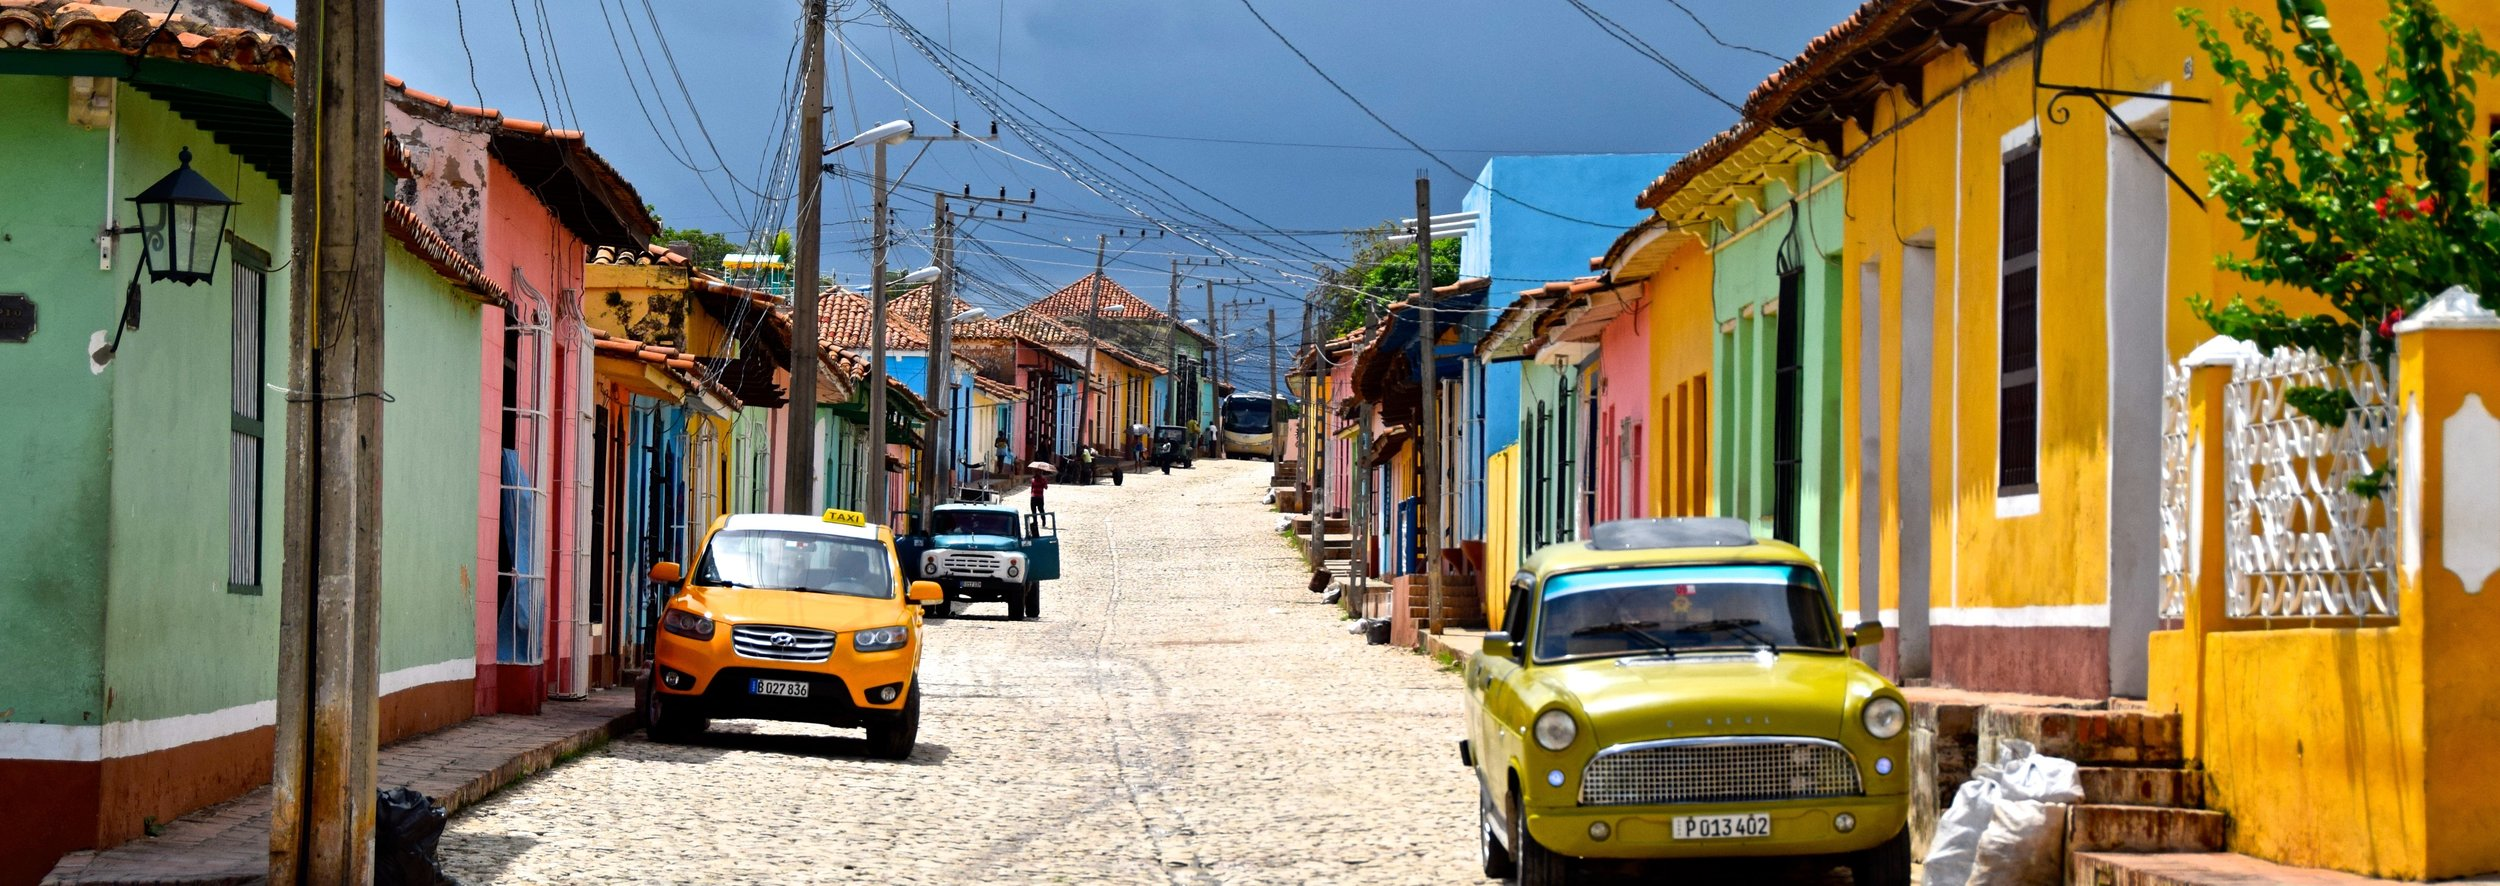 Four Travel Trends for 2017 Cuba